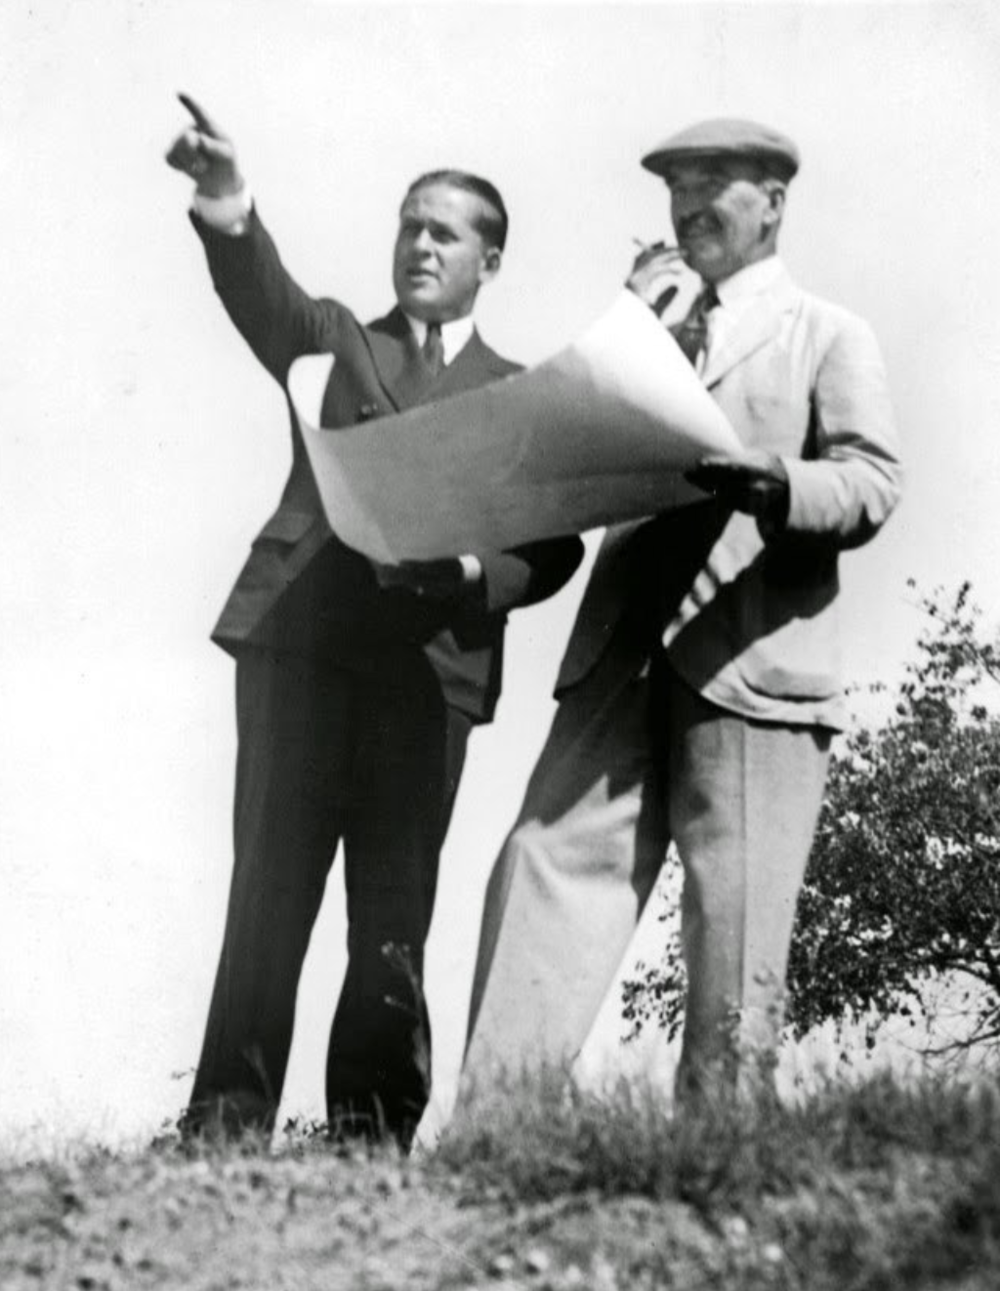 A Brief History of The Masters: Alister MacKenzie and Bobby Jones